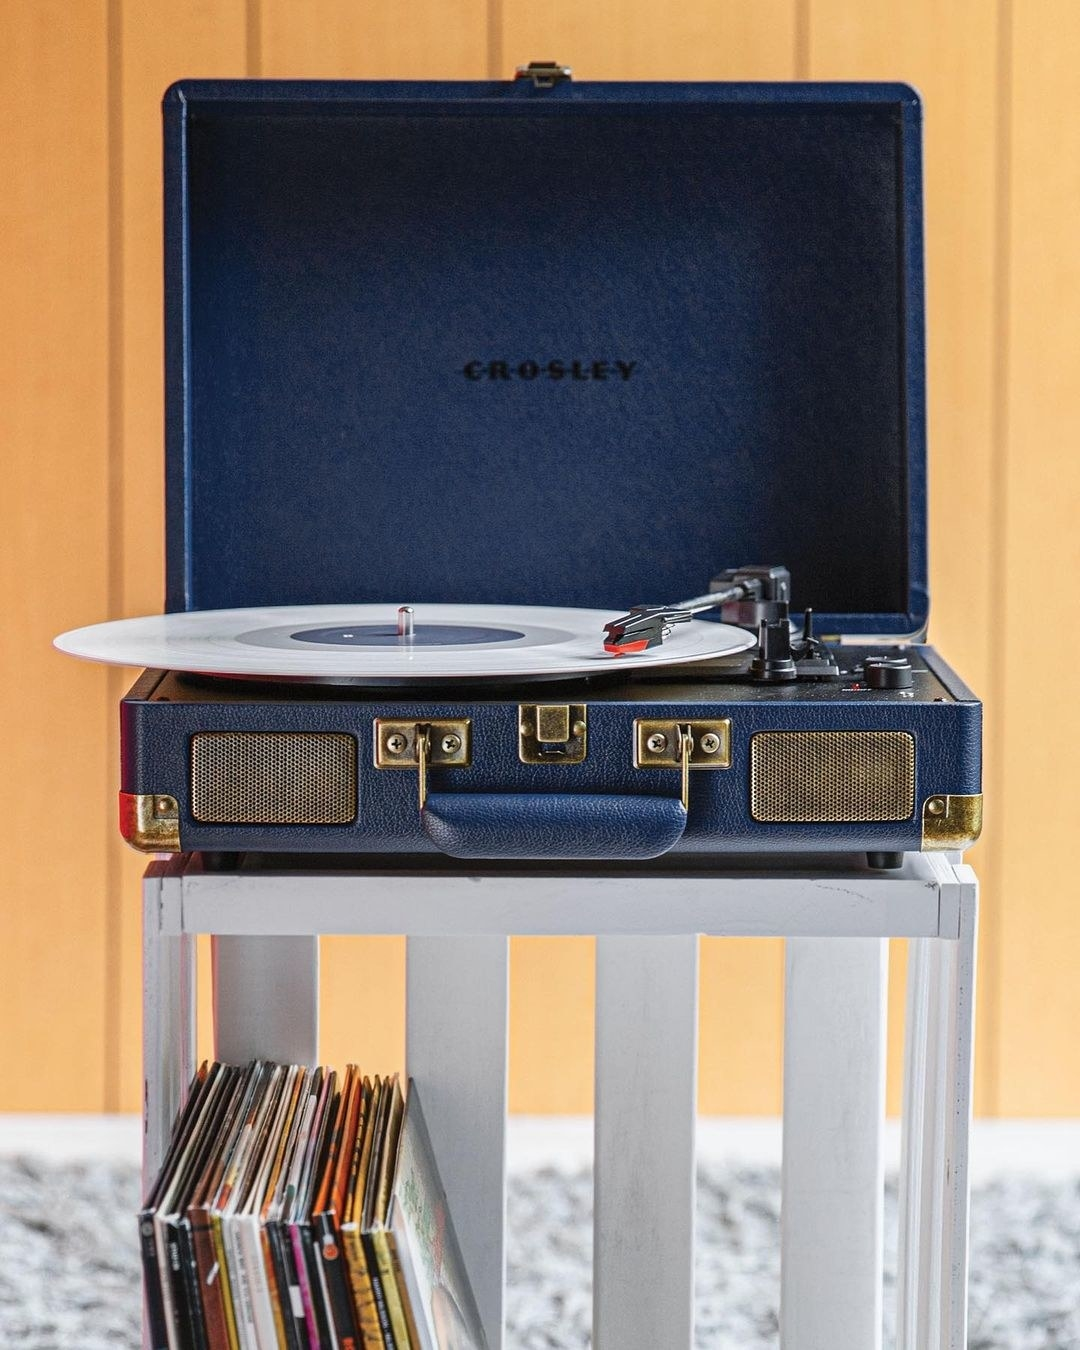 The suitcase-styled vinyl player